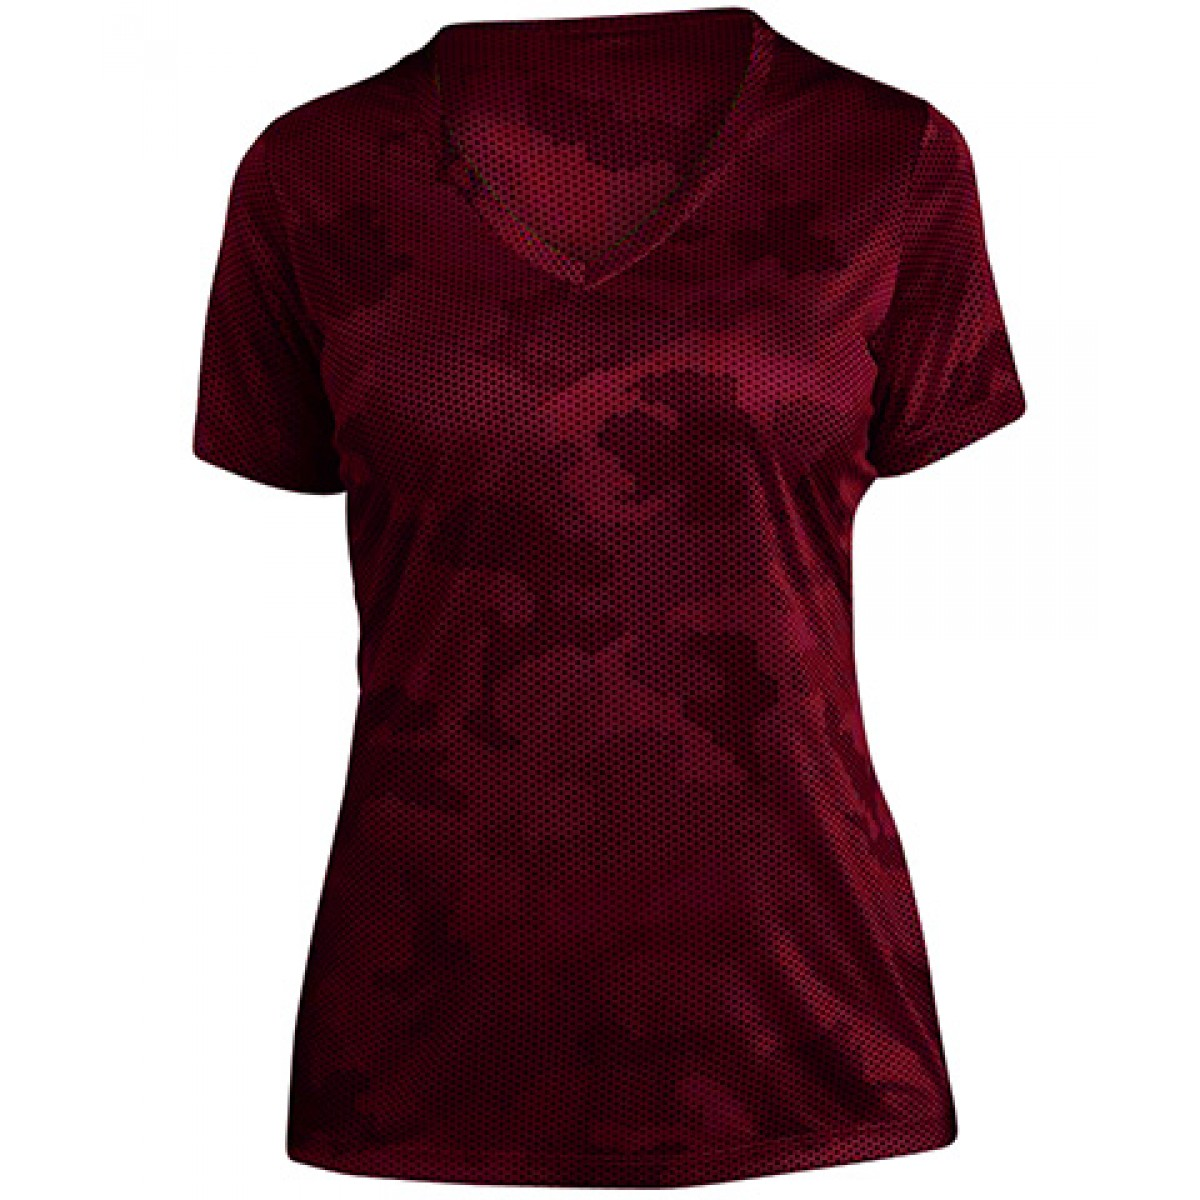 Ladies CamoHex V-Neck Tee-Red-3XL